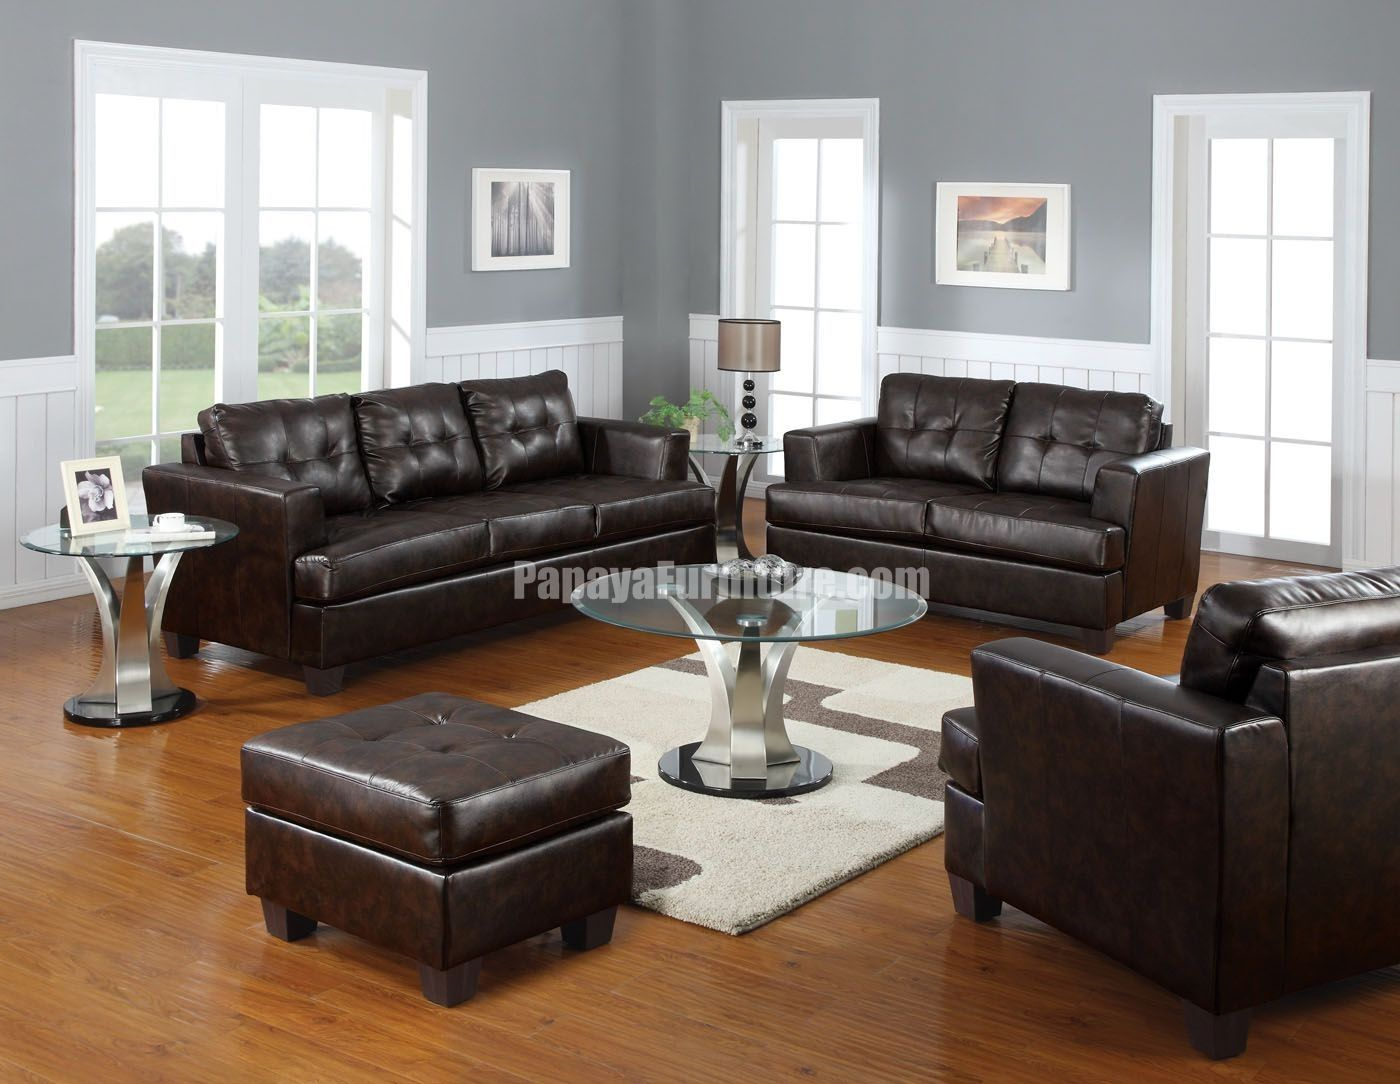 Dark Brown Couch Decorating Ideas Dark Brown Leather